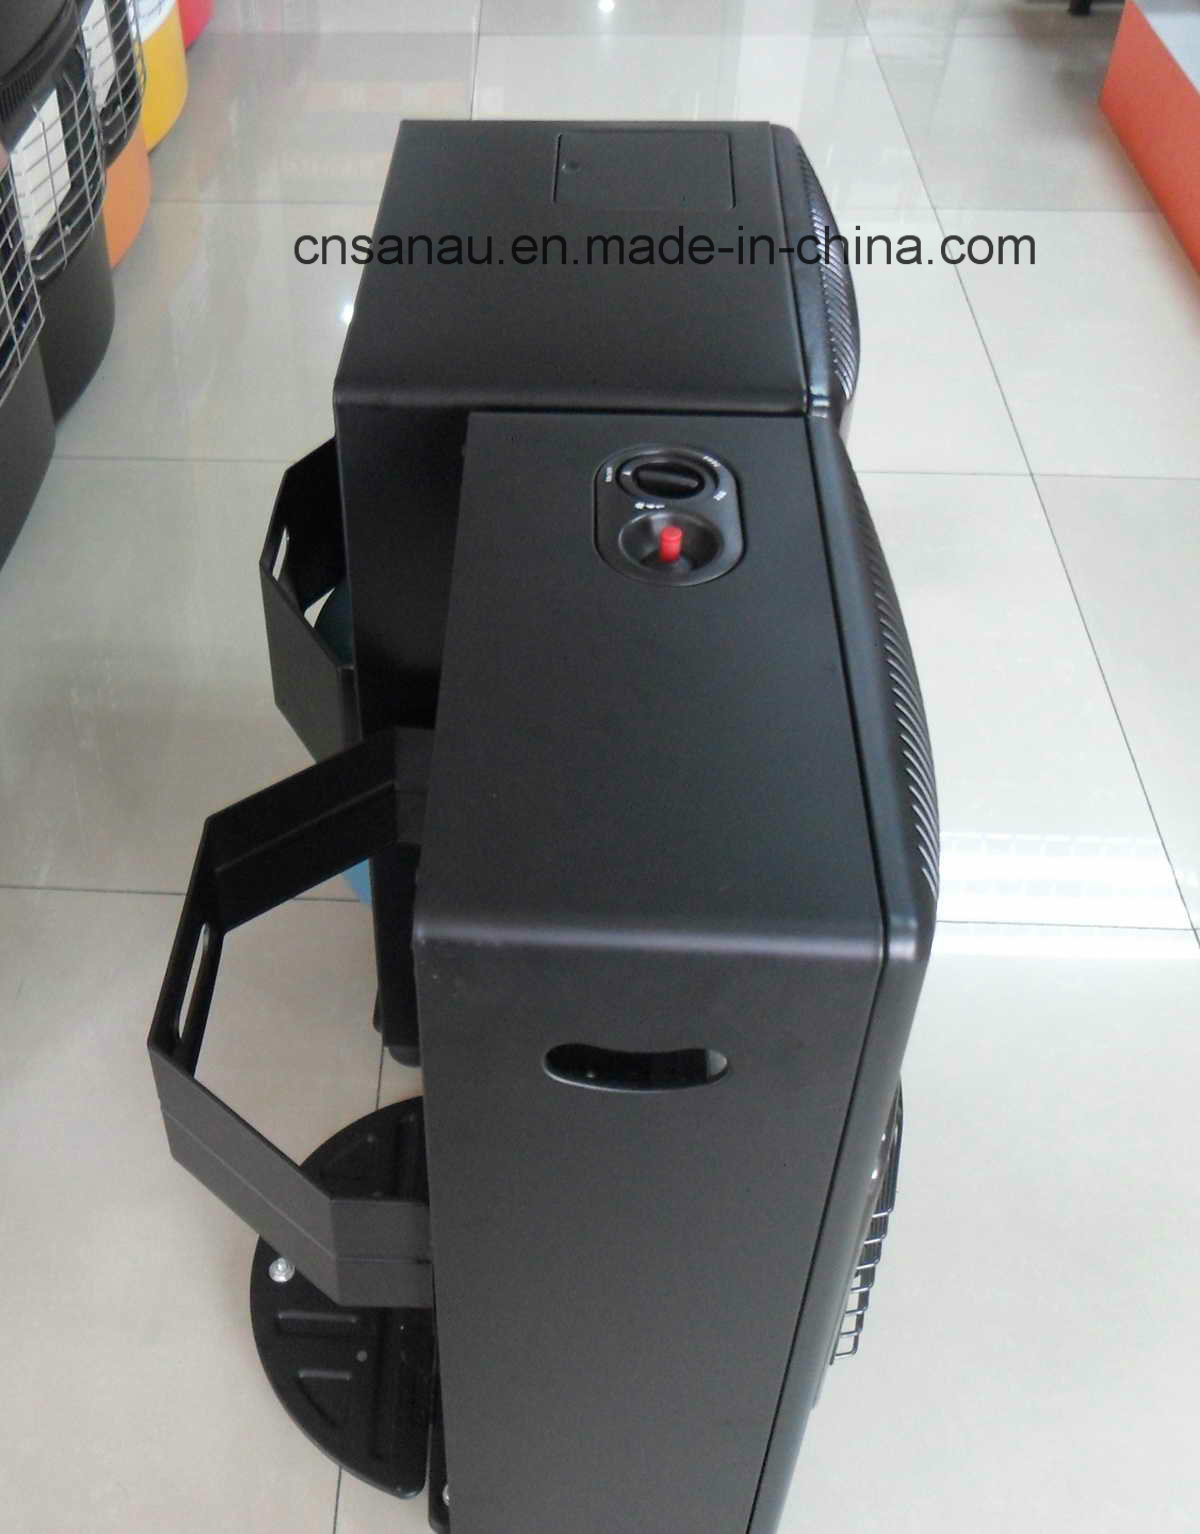 Mobile Gas Heater with 3plate Hight Efficiency Ceramic Burner Sn08-E pictures & photos